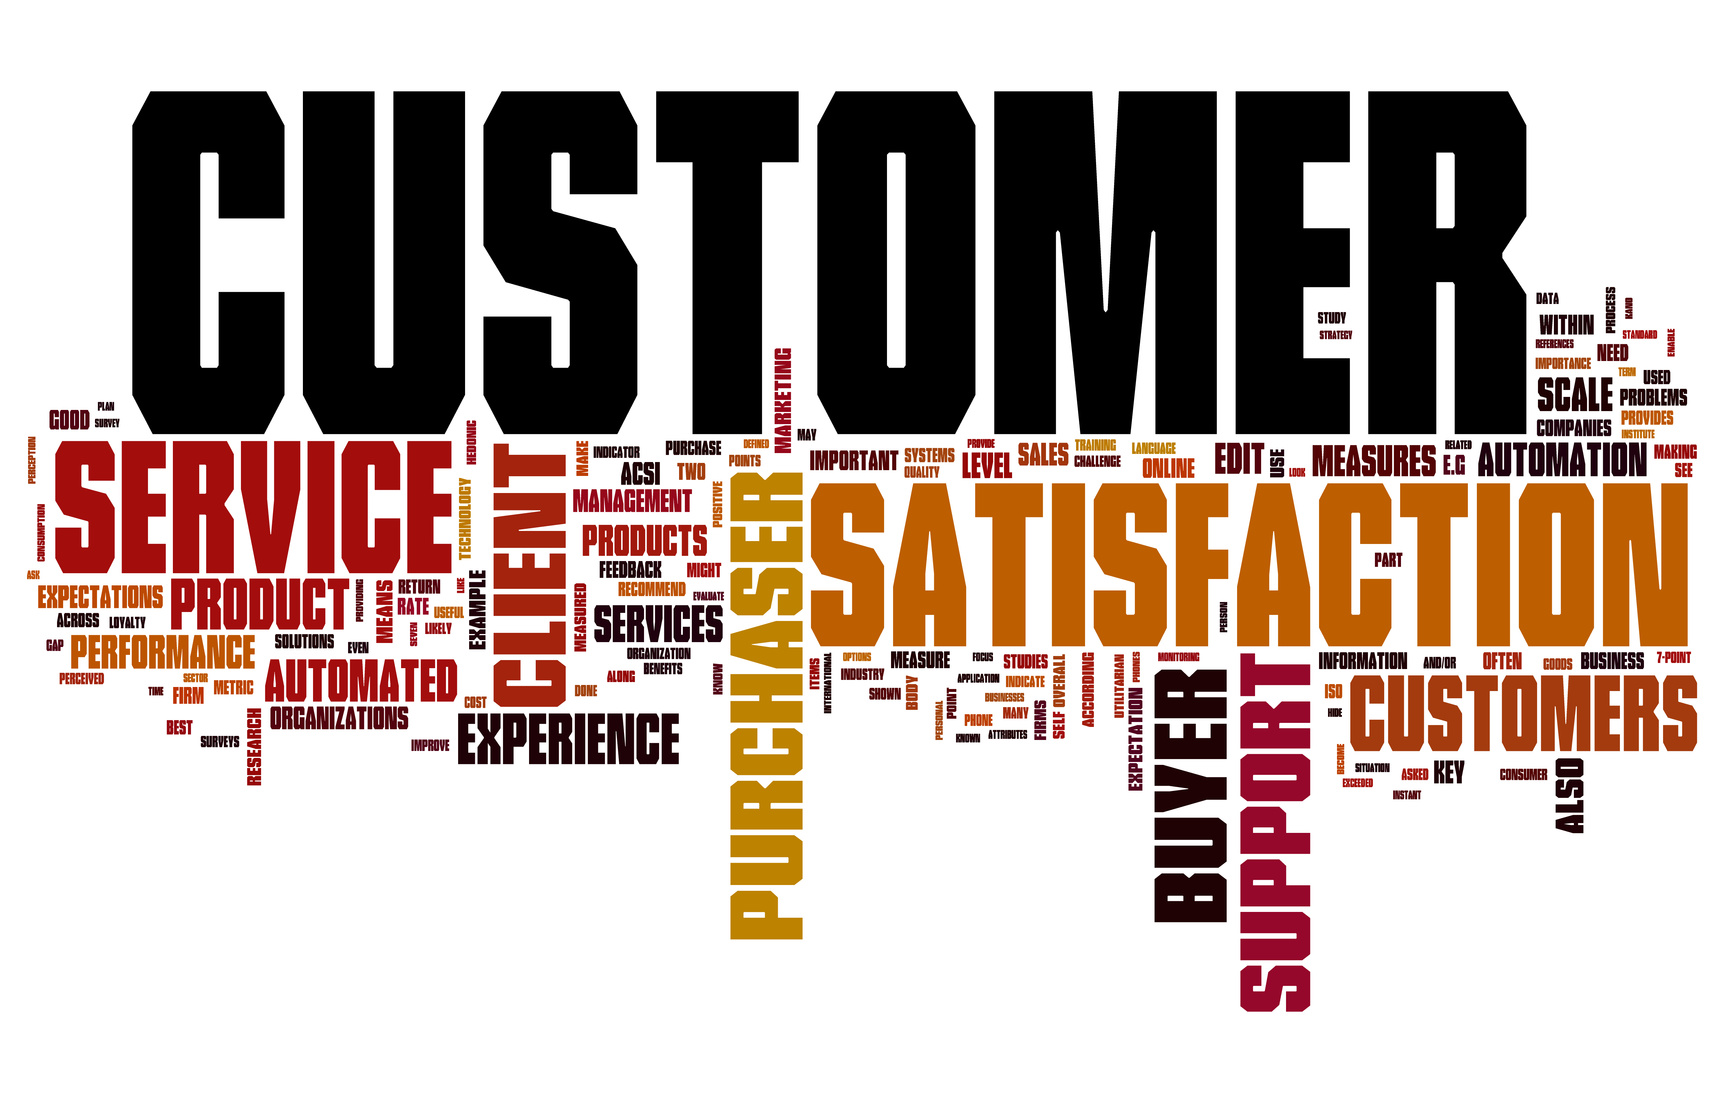 The overall satisfaction of a manufacturer's other clients is a great indication of the quality of both their products and their after-sale support.